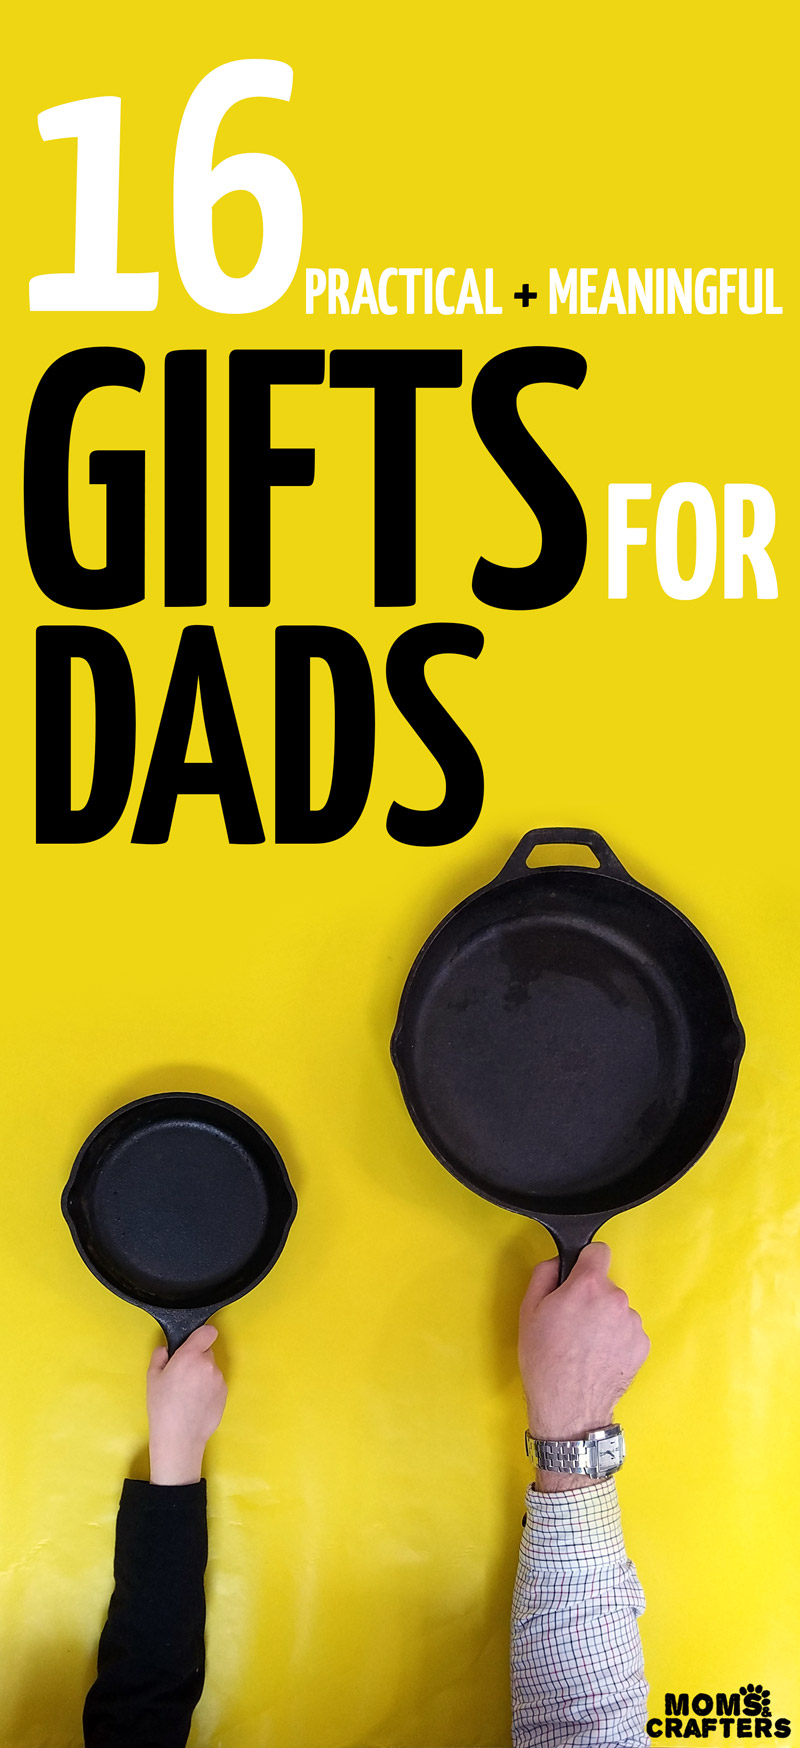 This awesome list of gifts for dads includes every type of Dad you might want! You'll find meaningful gift ideas for men and for fathers for Christmas, Hanukkah, birthdays, or anything...